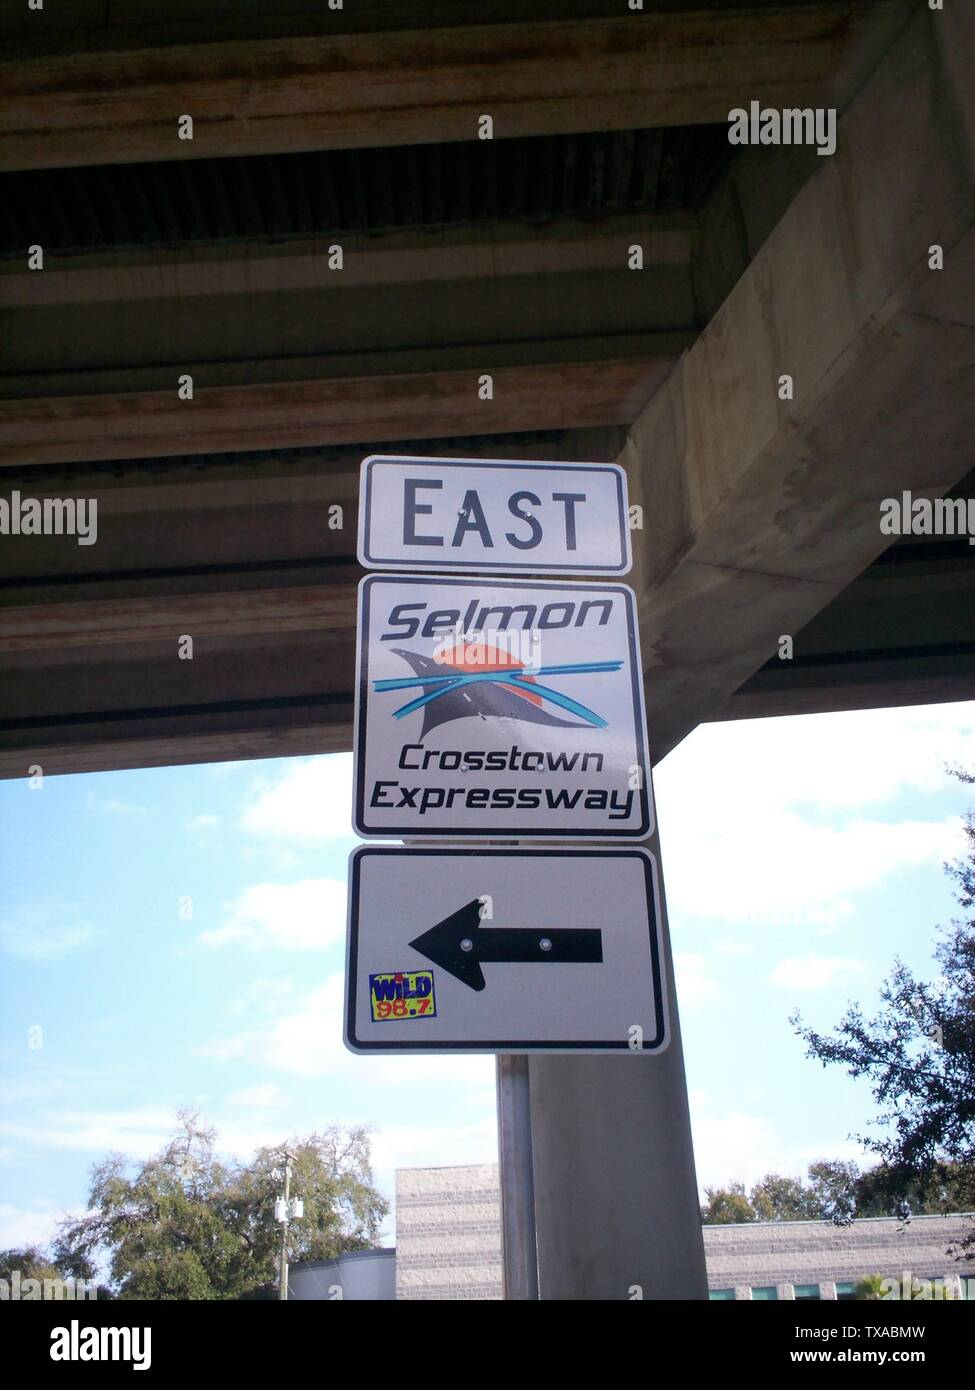 'English: The new shield/logo for the Lee Roy Selmon Crosstown Expressway - State Road 618 (Florida).; 6 August 2006(according to Exif data); Own work; User:Wslupecki; ' - Stock Image